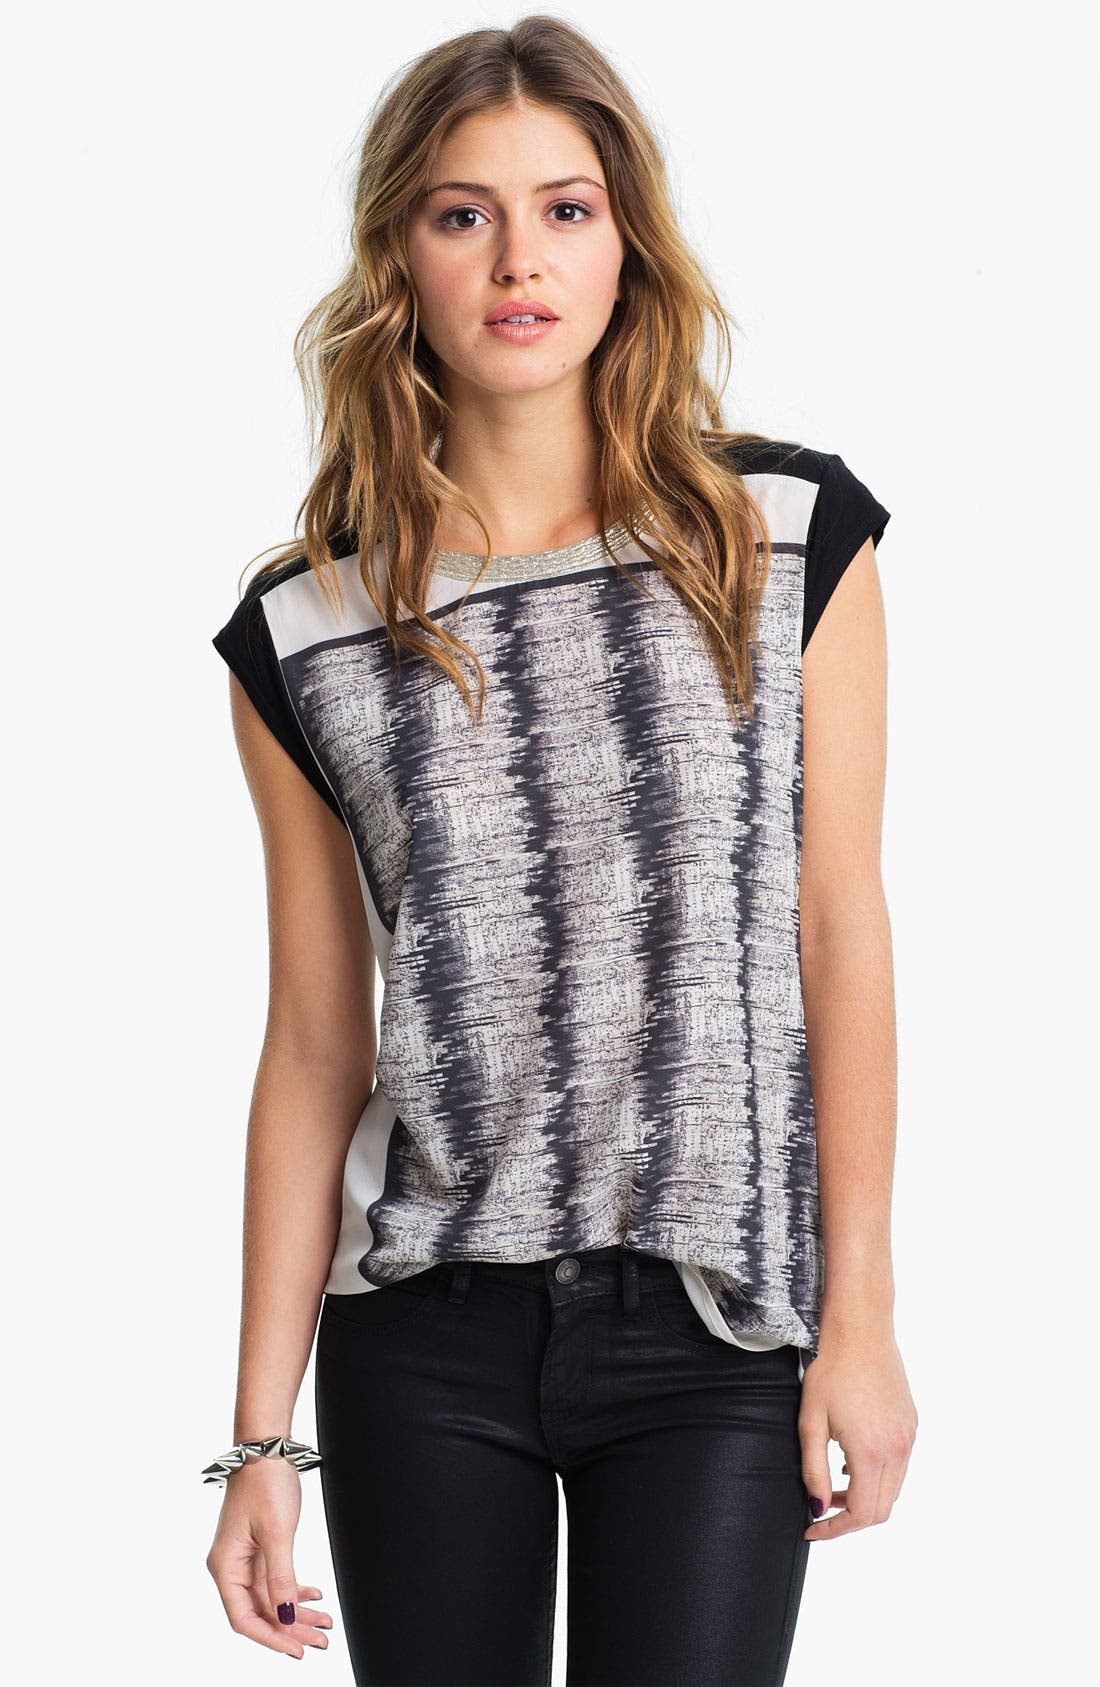 Alternate Image 1 Selected - Chloe K Embellished Necklace Graphic Muscle Tee (Juniors)